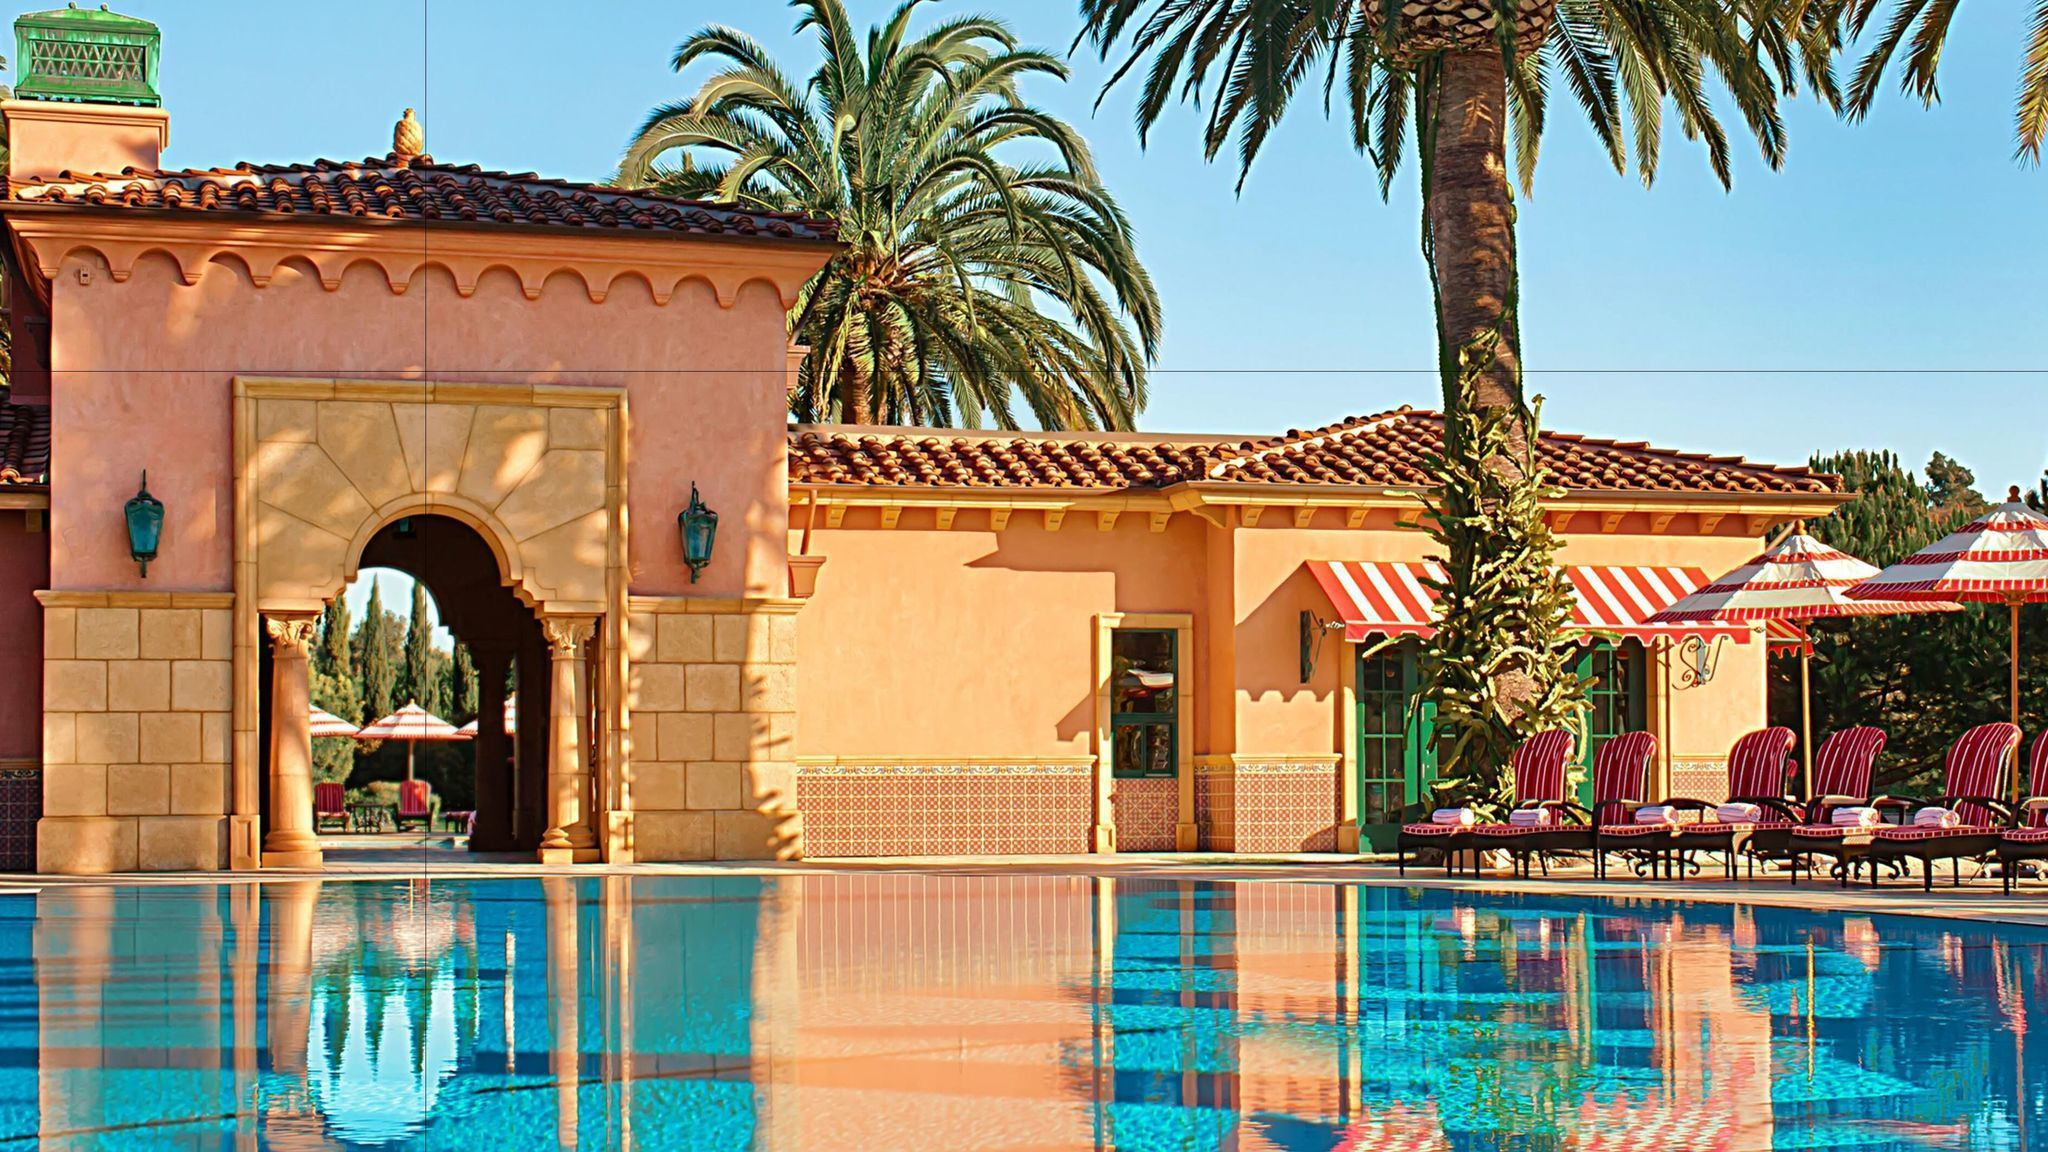 Grand del mar regains forbes 39 highest rating the san for Addison salon san francisco